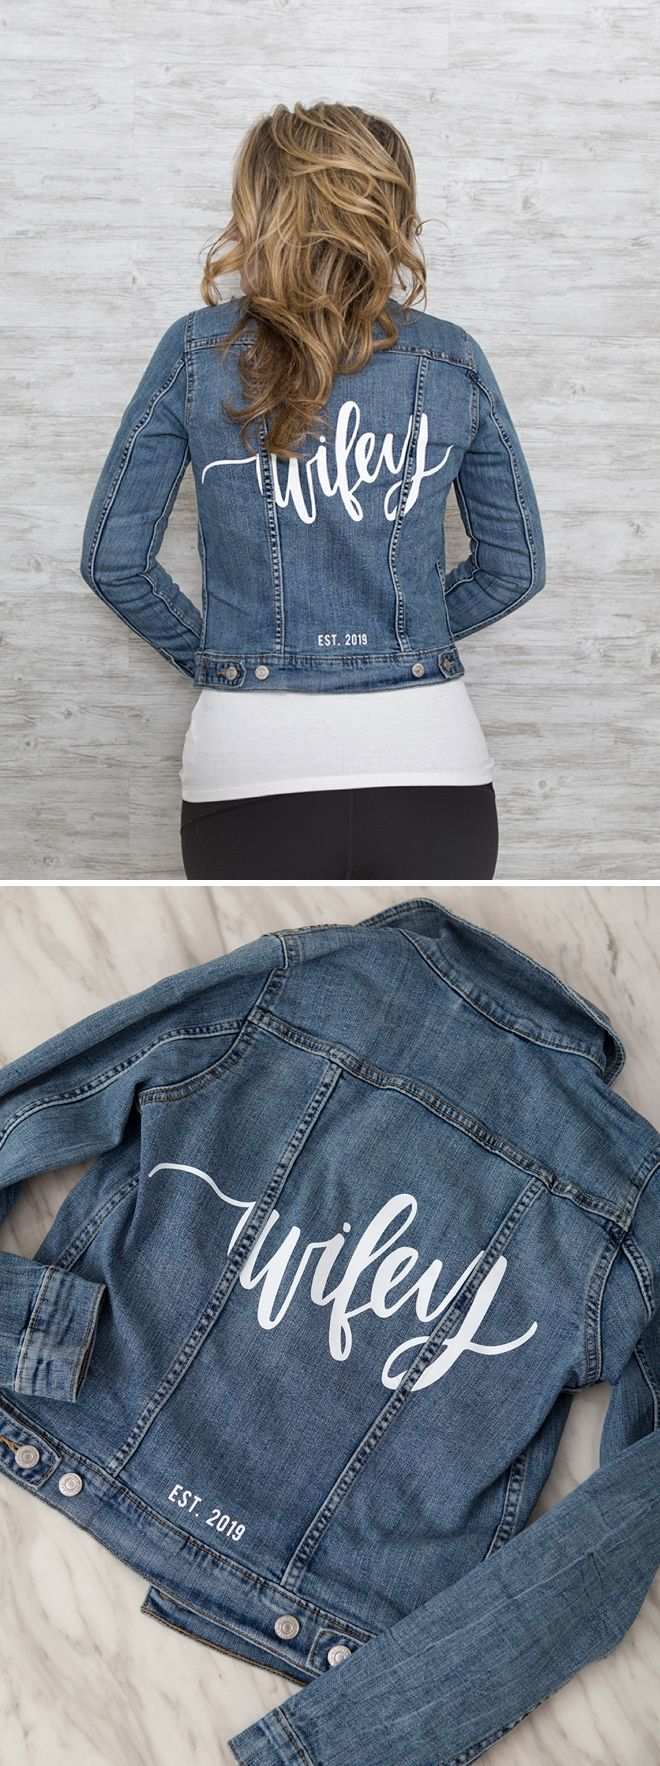 These Custom Bride And Wifey Jean Jackets Are The Best Bridal Shower Outfit Wedding Jacket Jean Jacket [ 1766 x 660 Pixel ]